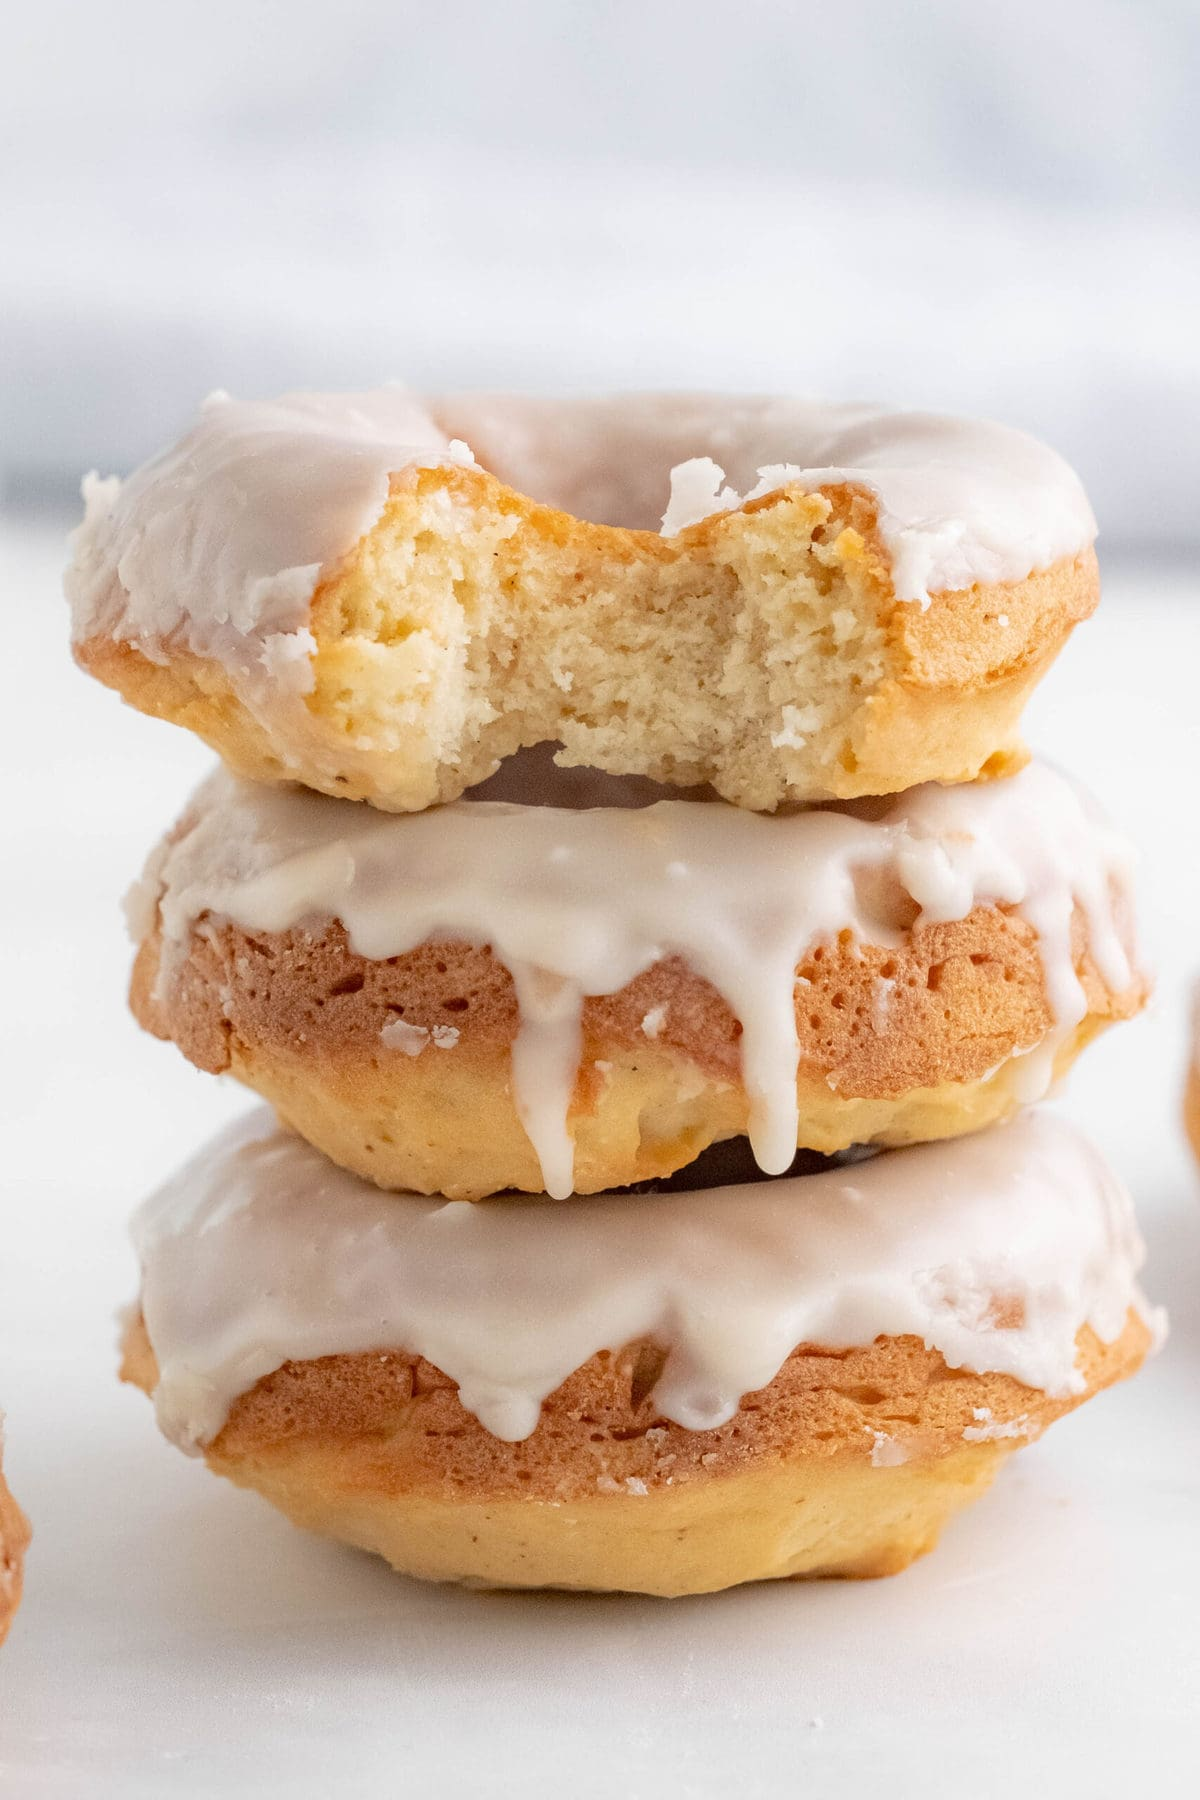 stack of donuts with a bite taken out of one